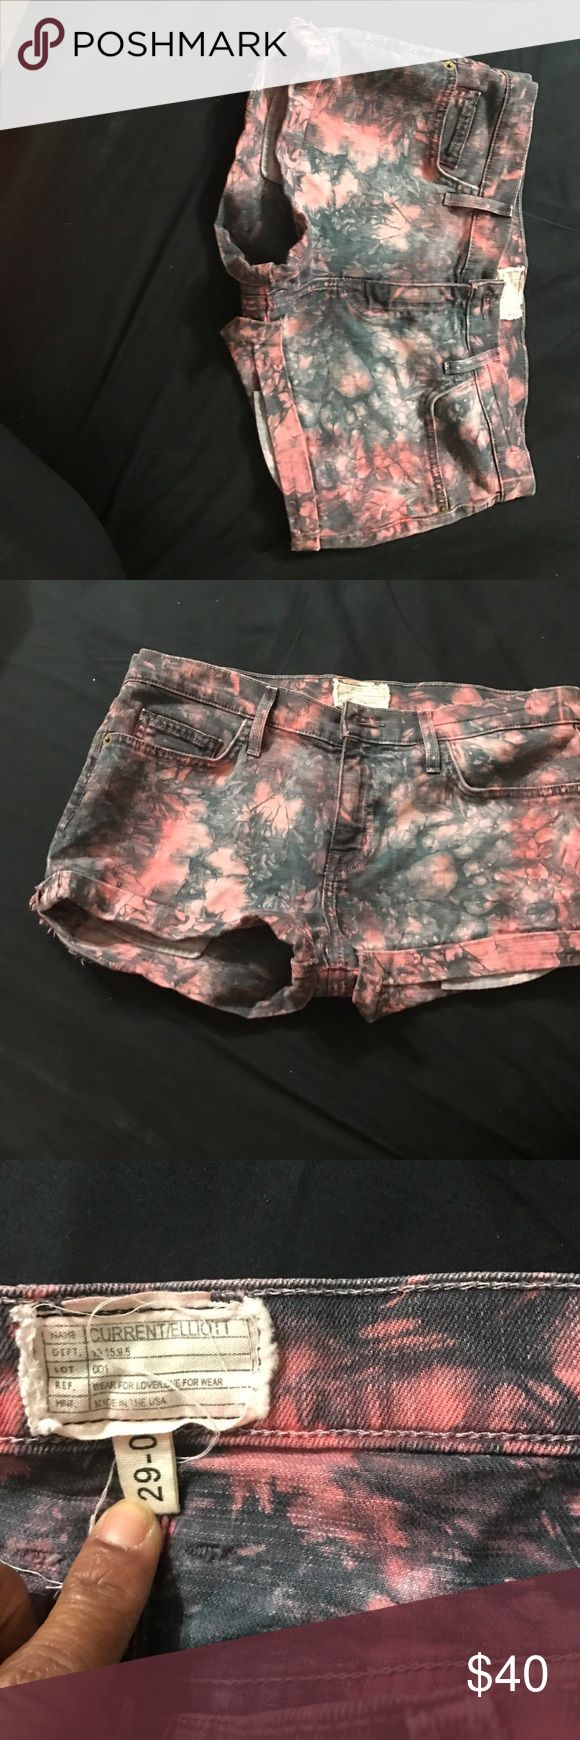 """Current/Elliott  the girlfriend short Size 29   Classic denim with a little bit of an edge! These shorts are perfect to spice up your spring/summer wardrobe this season.   - 1"""" Inseam  - 9.5"""" Rise  - 98% cotton 2% elastane  - Shorts measure approx 10"""" in length  - Distressed front and back pockets  - Cuffed Current/Elliott Shorts Jean Shorts"""